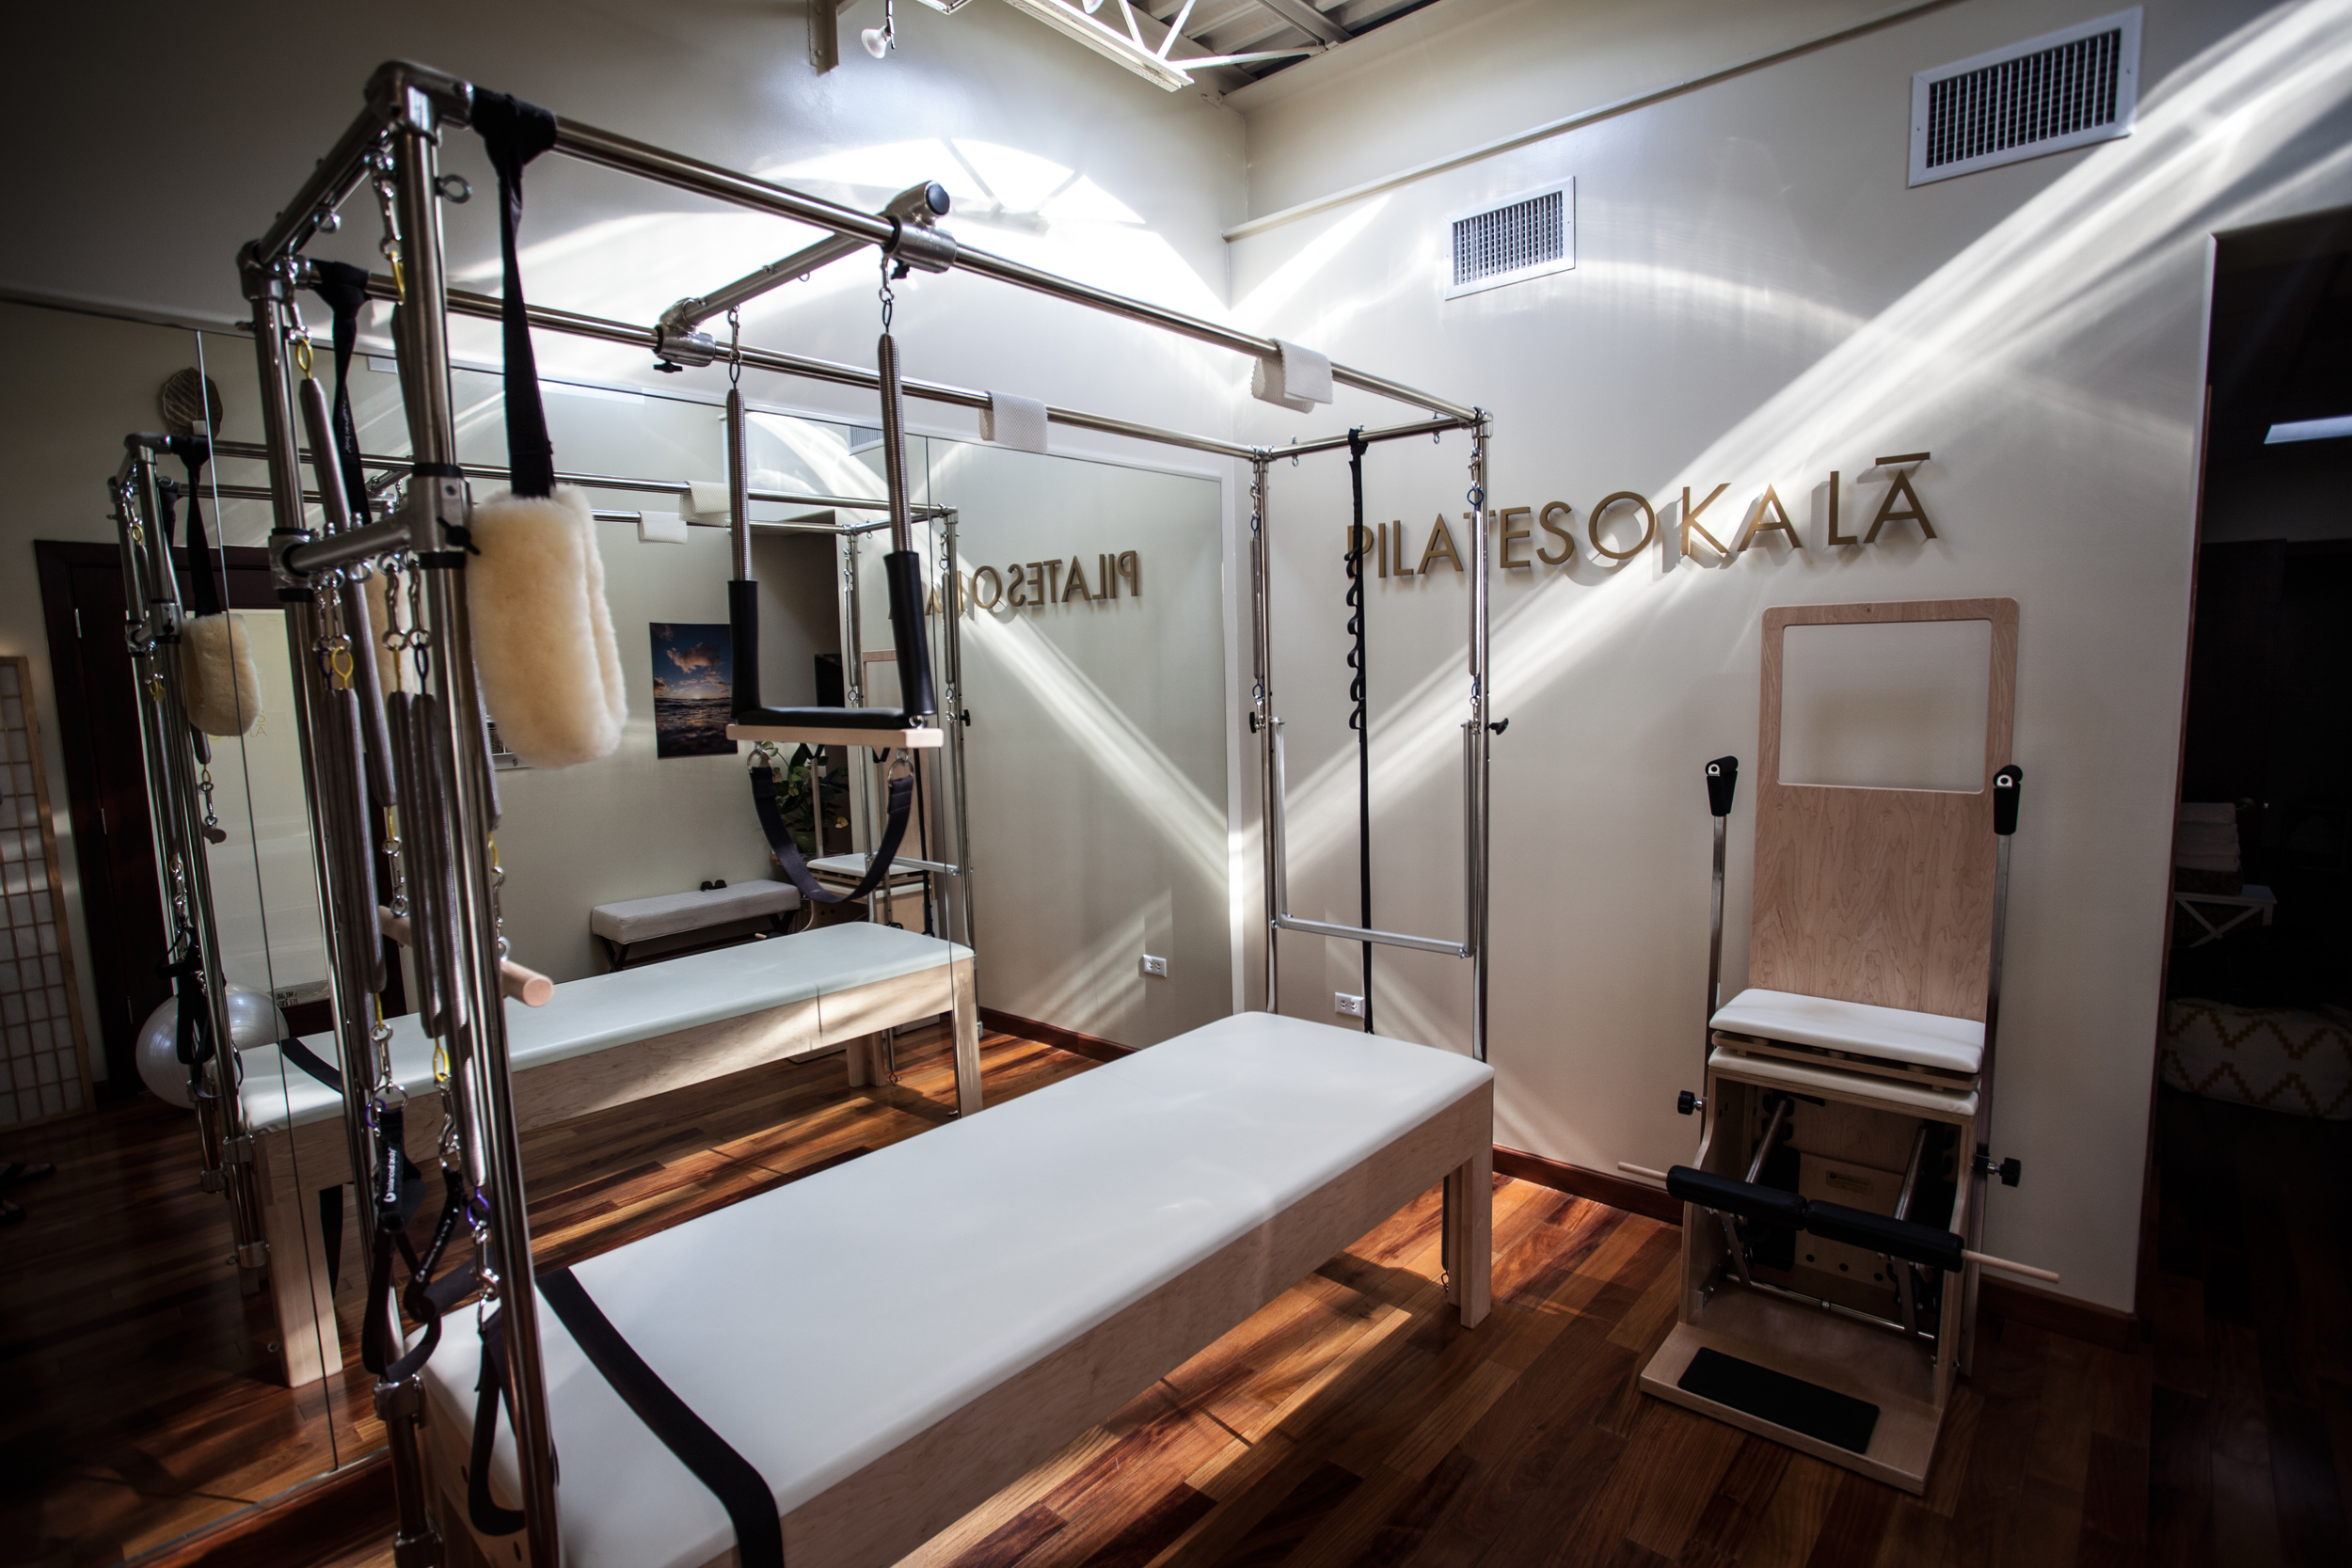 honolulu pilates studio